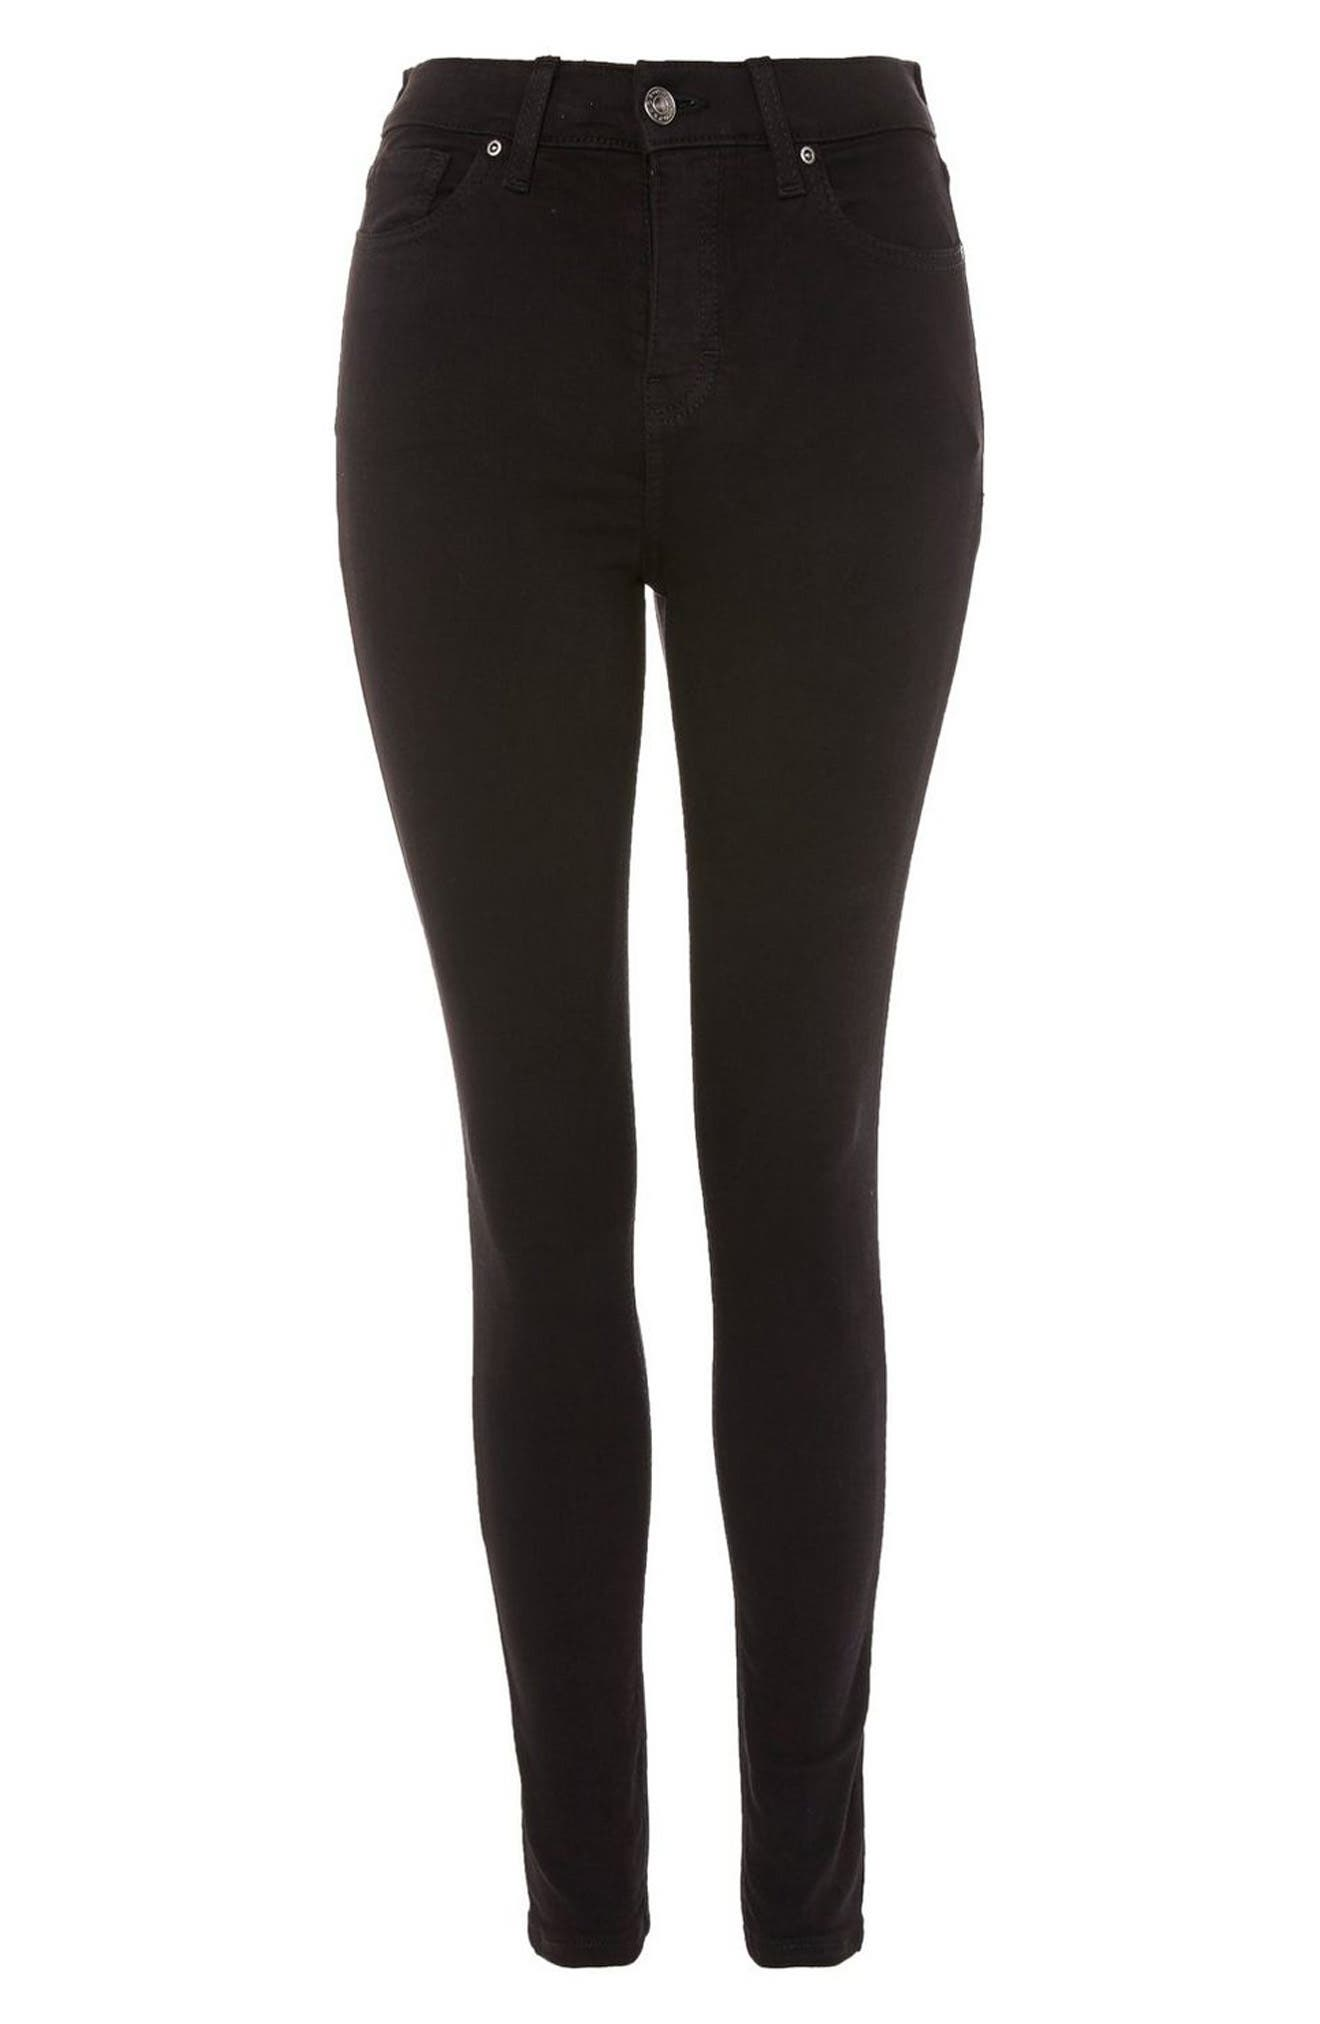 Jamie Black Jeans,                             Alternate thumbnail 4, color,                             BLACK